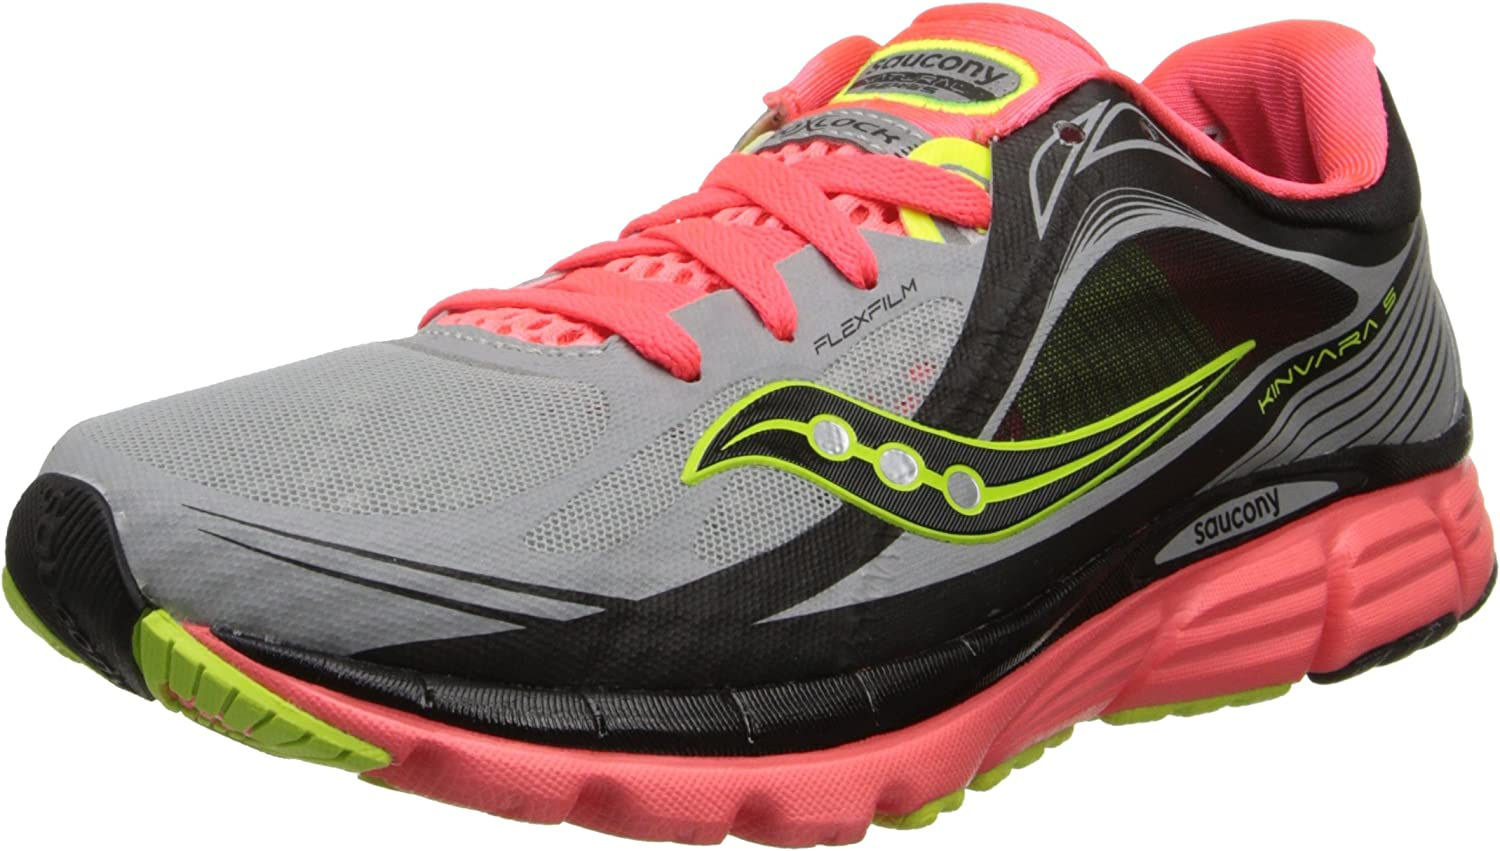 Saucony Women's Kinvara 5 ViziGlo Running shoes, 5.5 M US